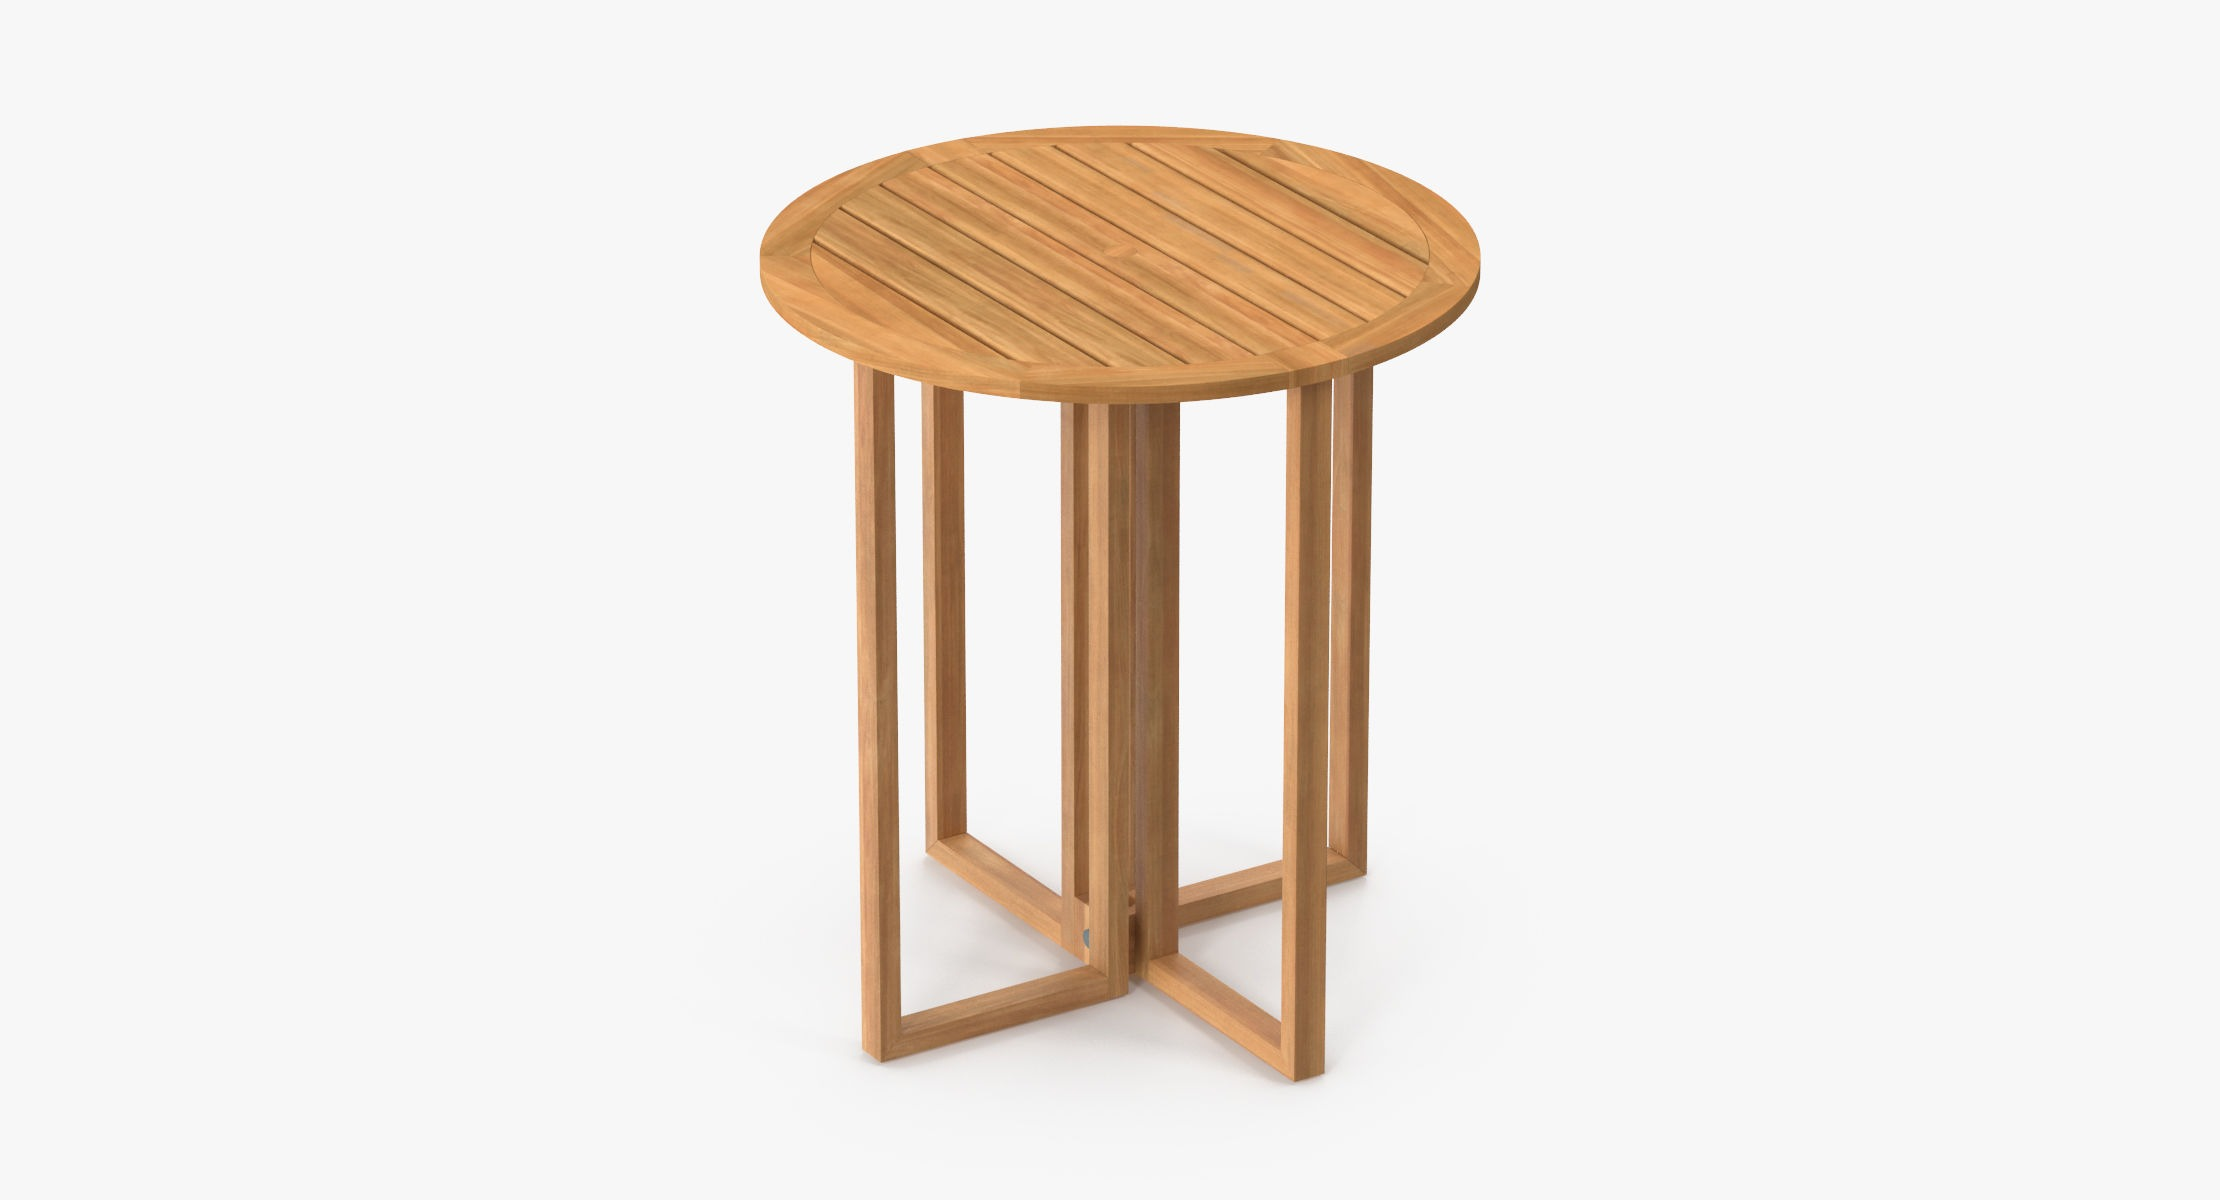 Patio Square Card Table 01 - reel 1